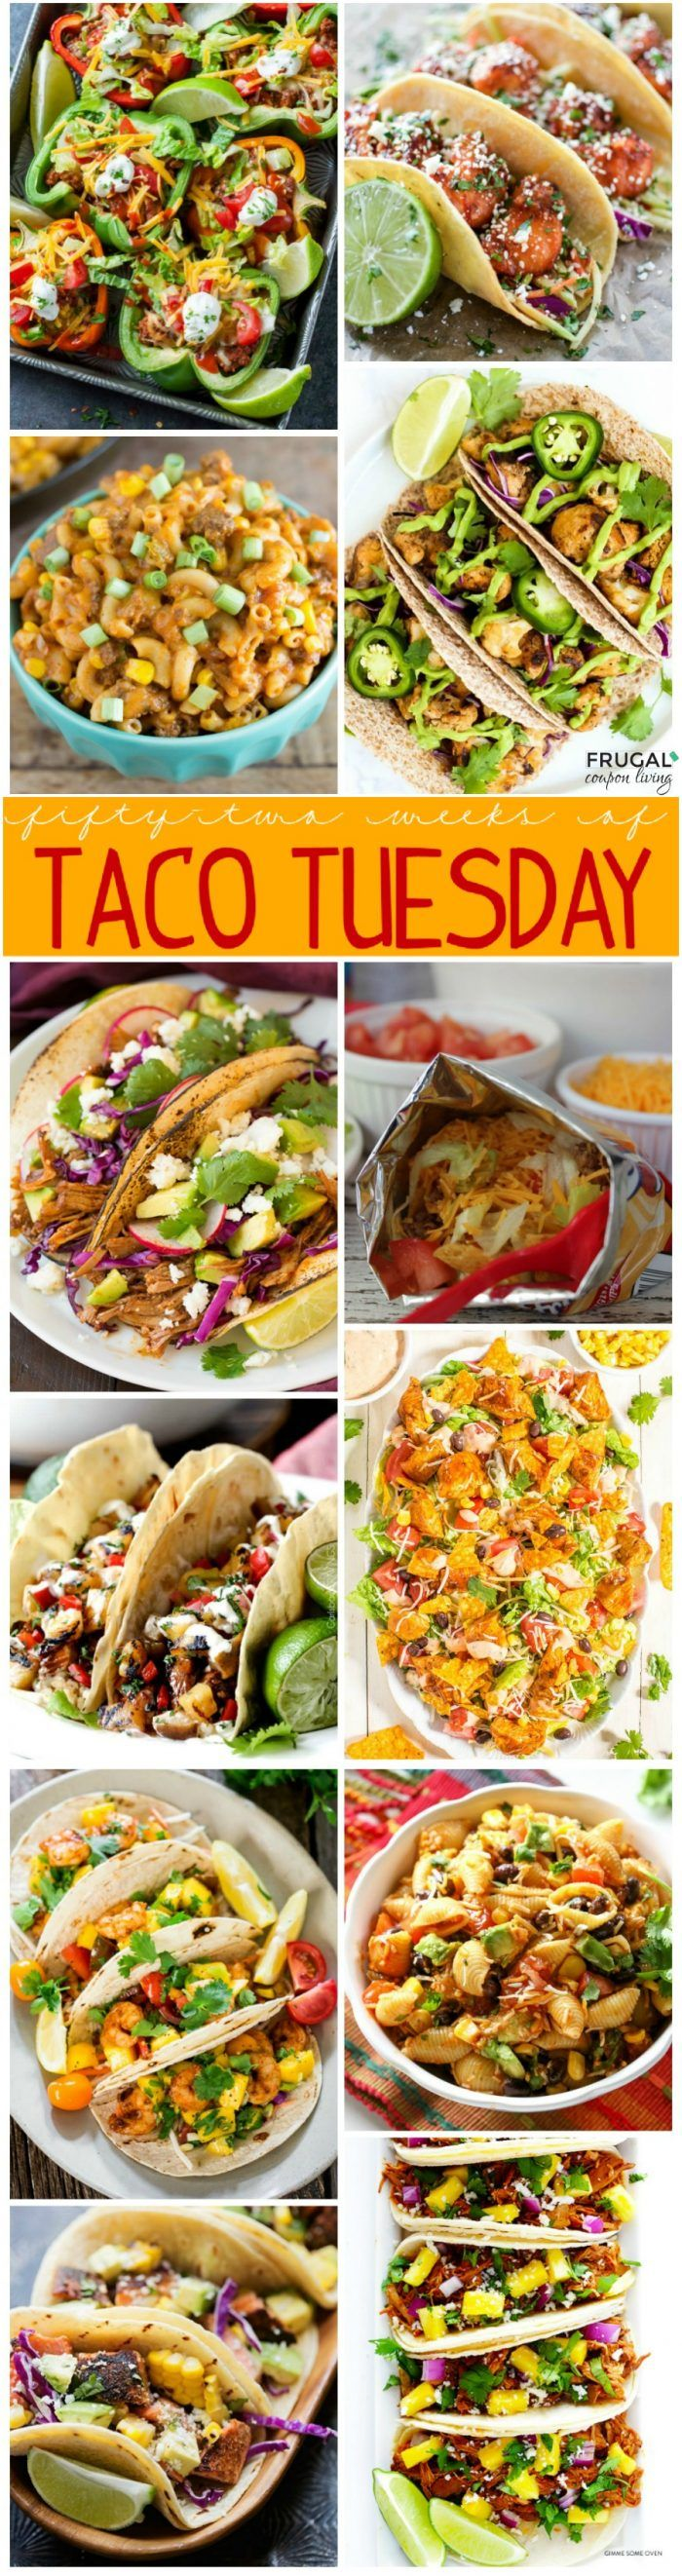 52 Weeks of Taco Tuesday Recipes